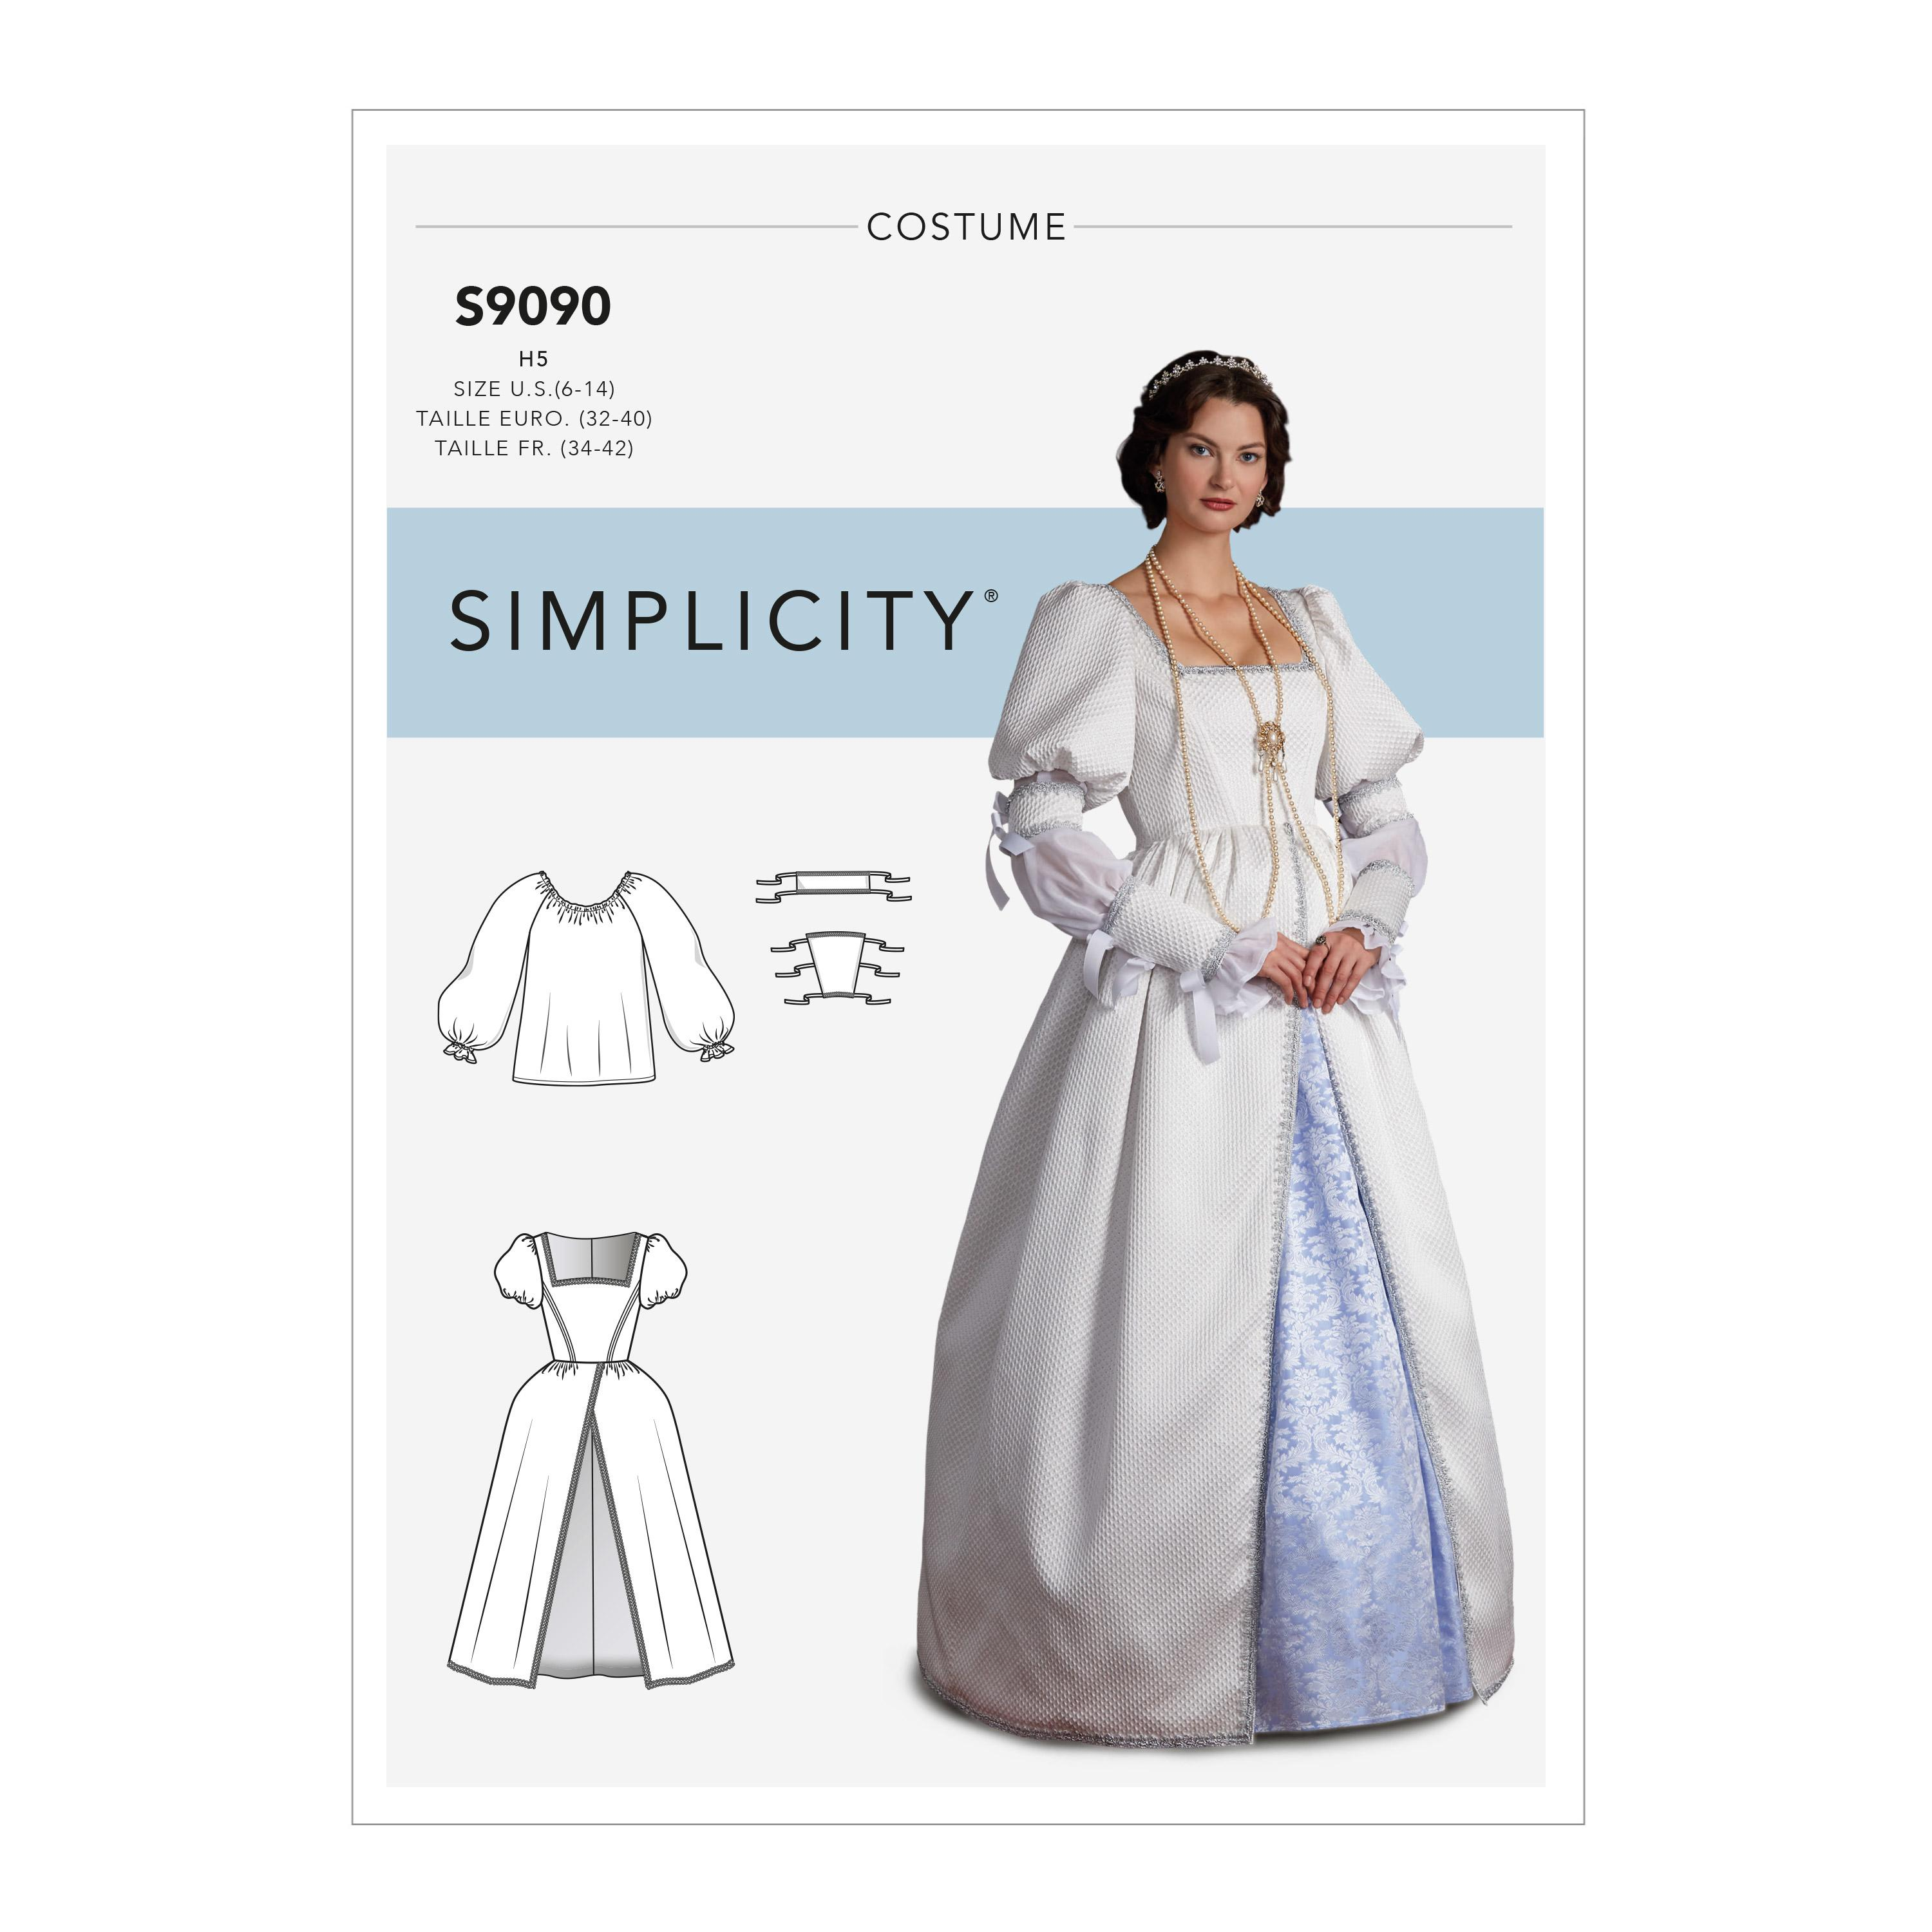 Simplicity S9090 Misses' Historical Costume